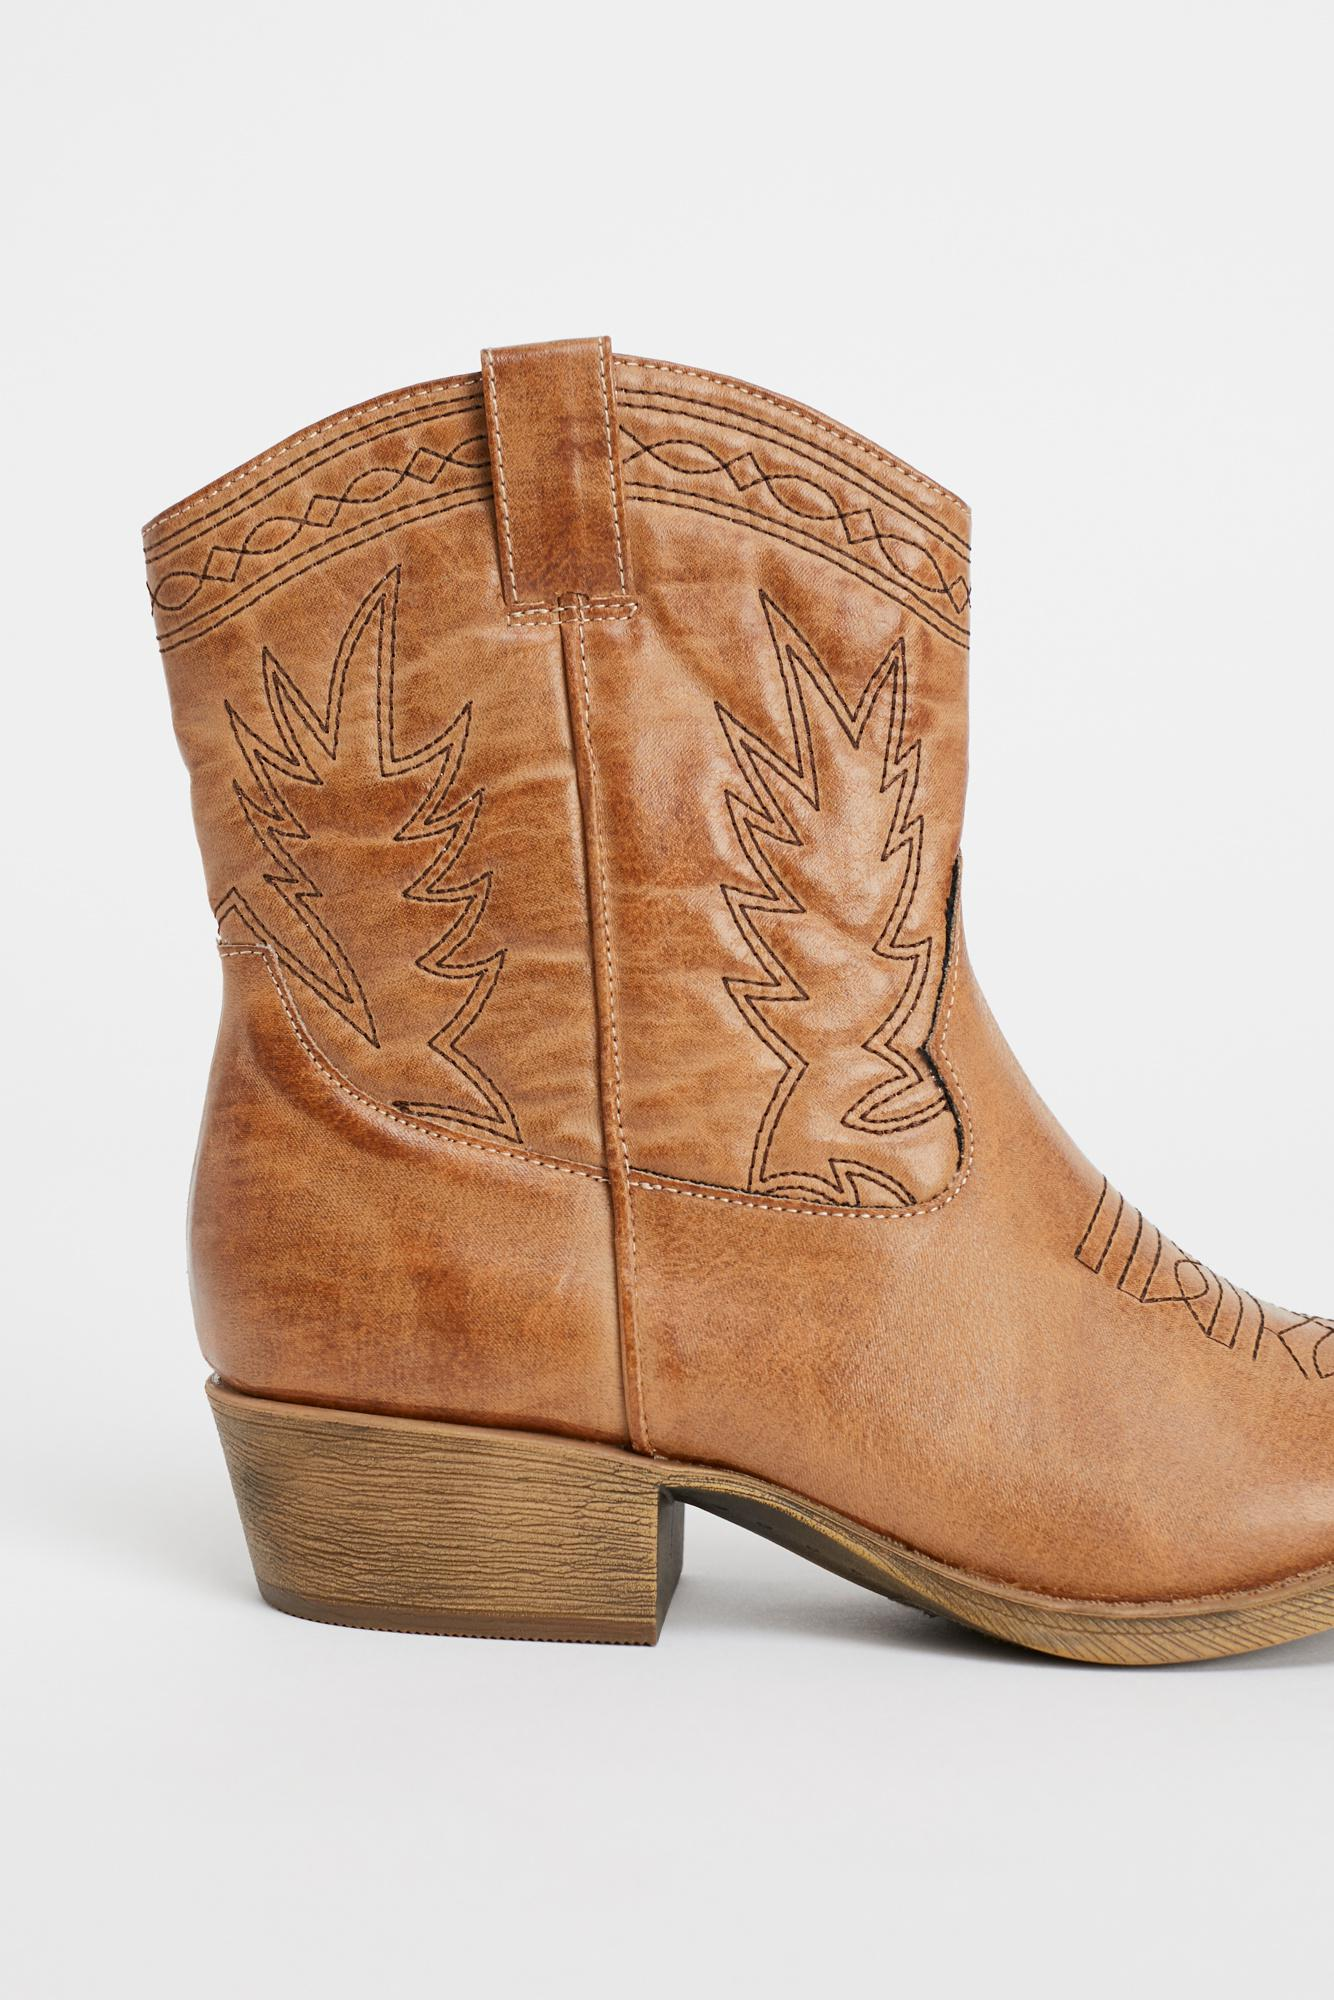 22f58c04e7a5 Free People - Brown Vegan Ranch Boot By Matisse - Lyst. View fullscreen